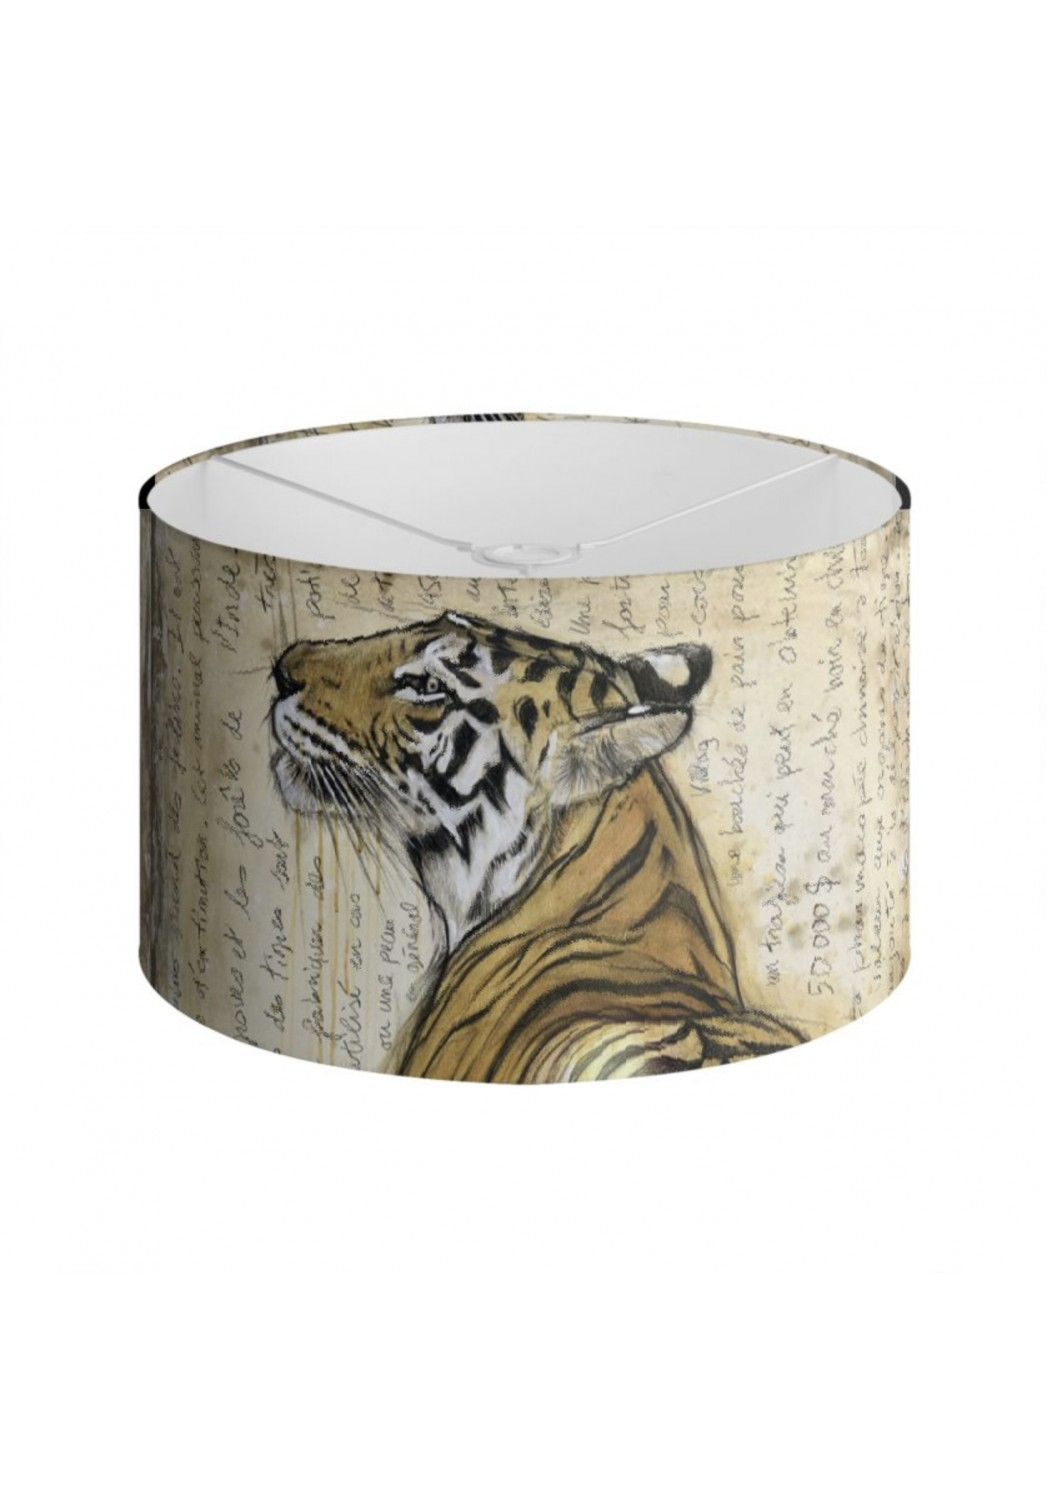 Marcello-art: Decoration accessoiries Lampshade 298 Bengal tiger